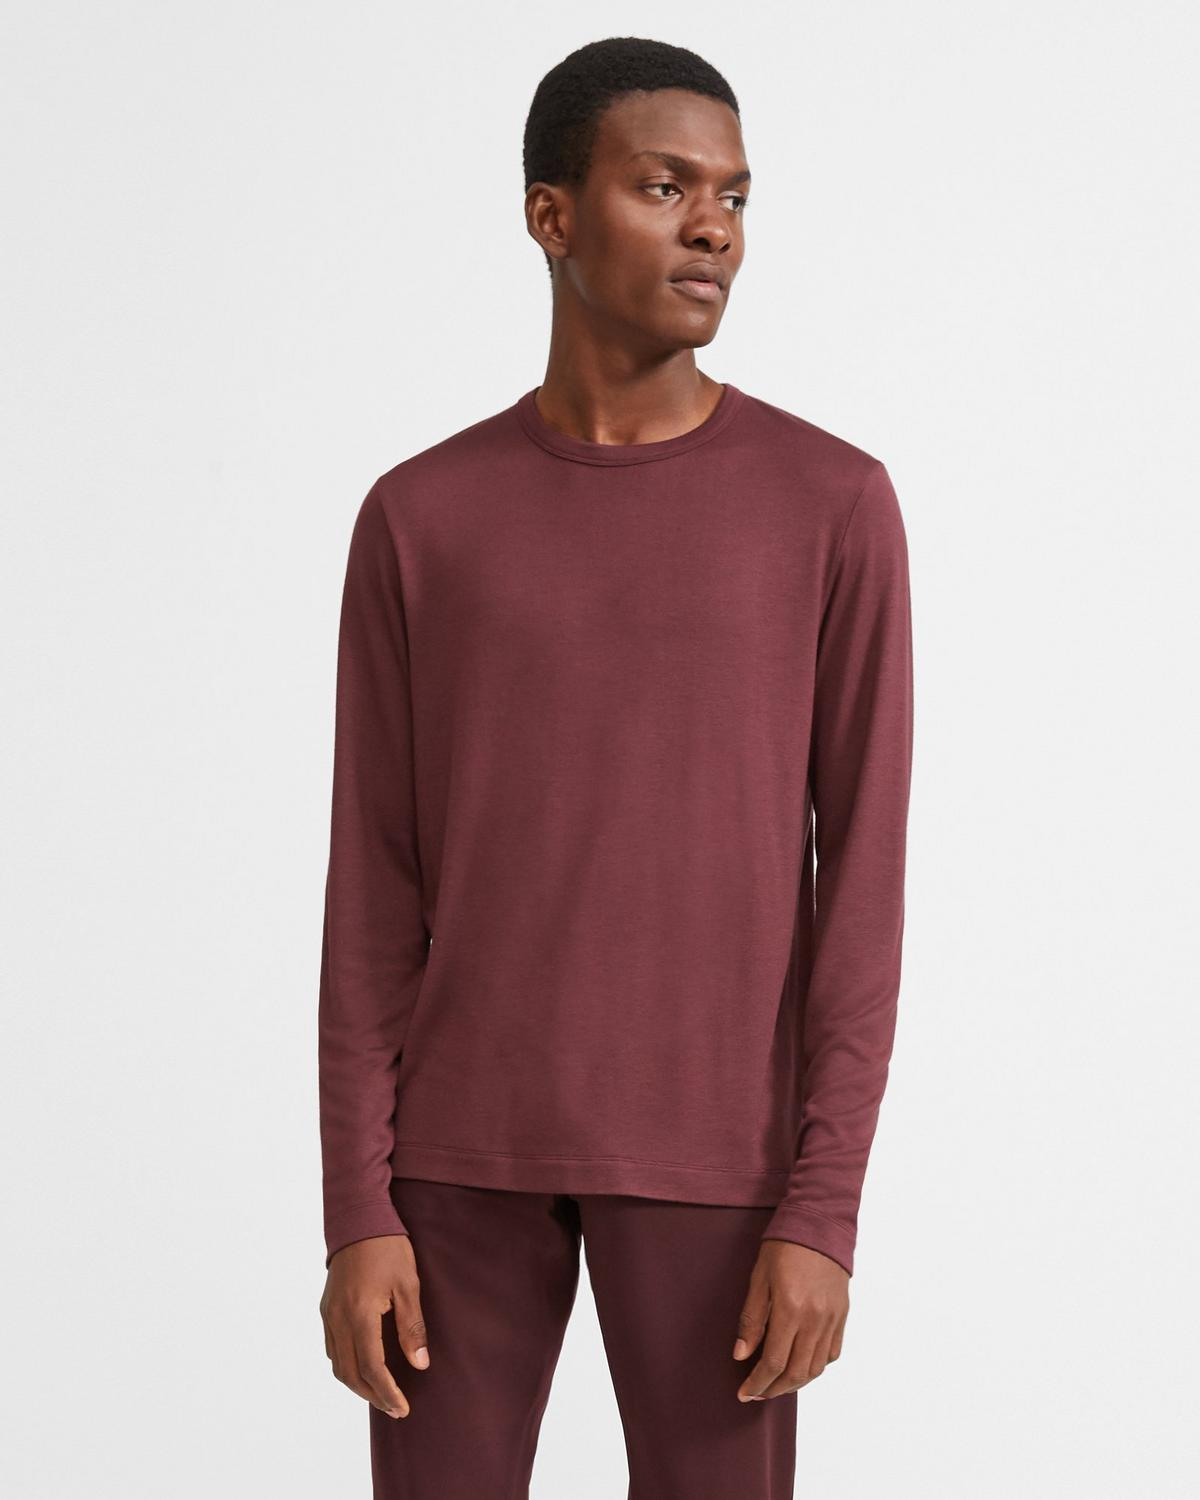 Modal Jersey Long-Sleeve Tee